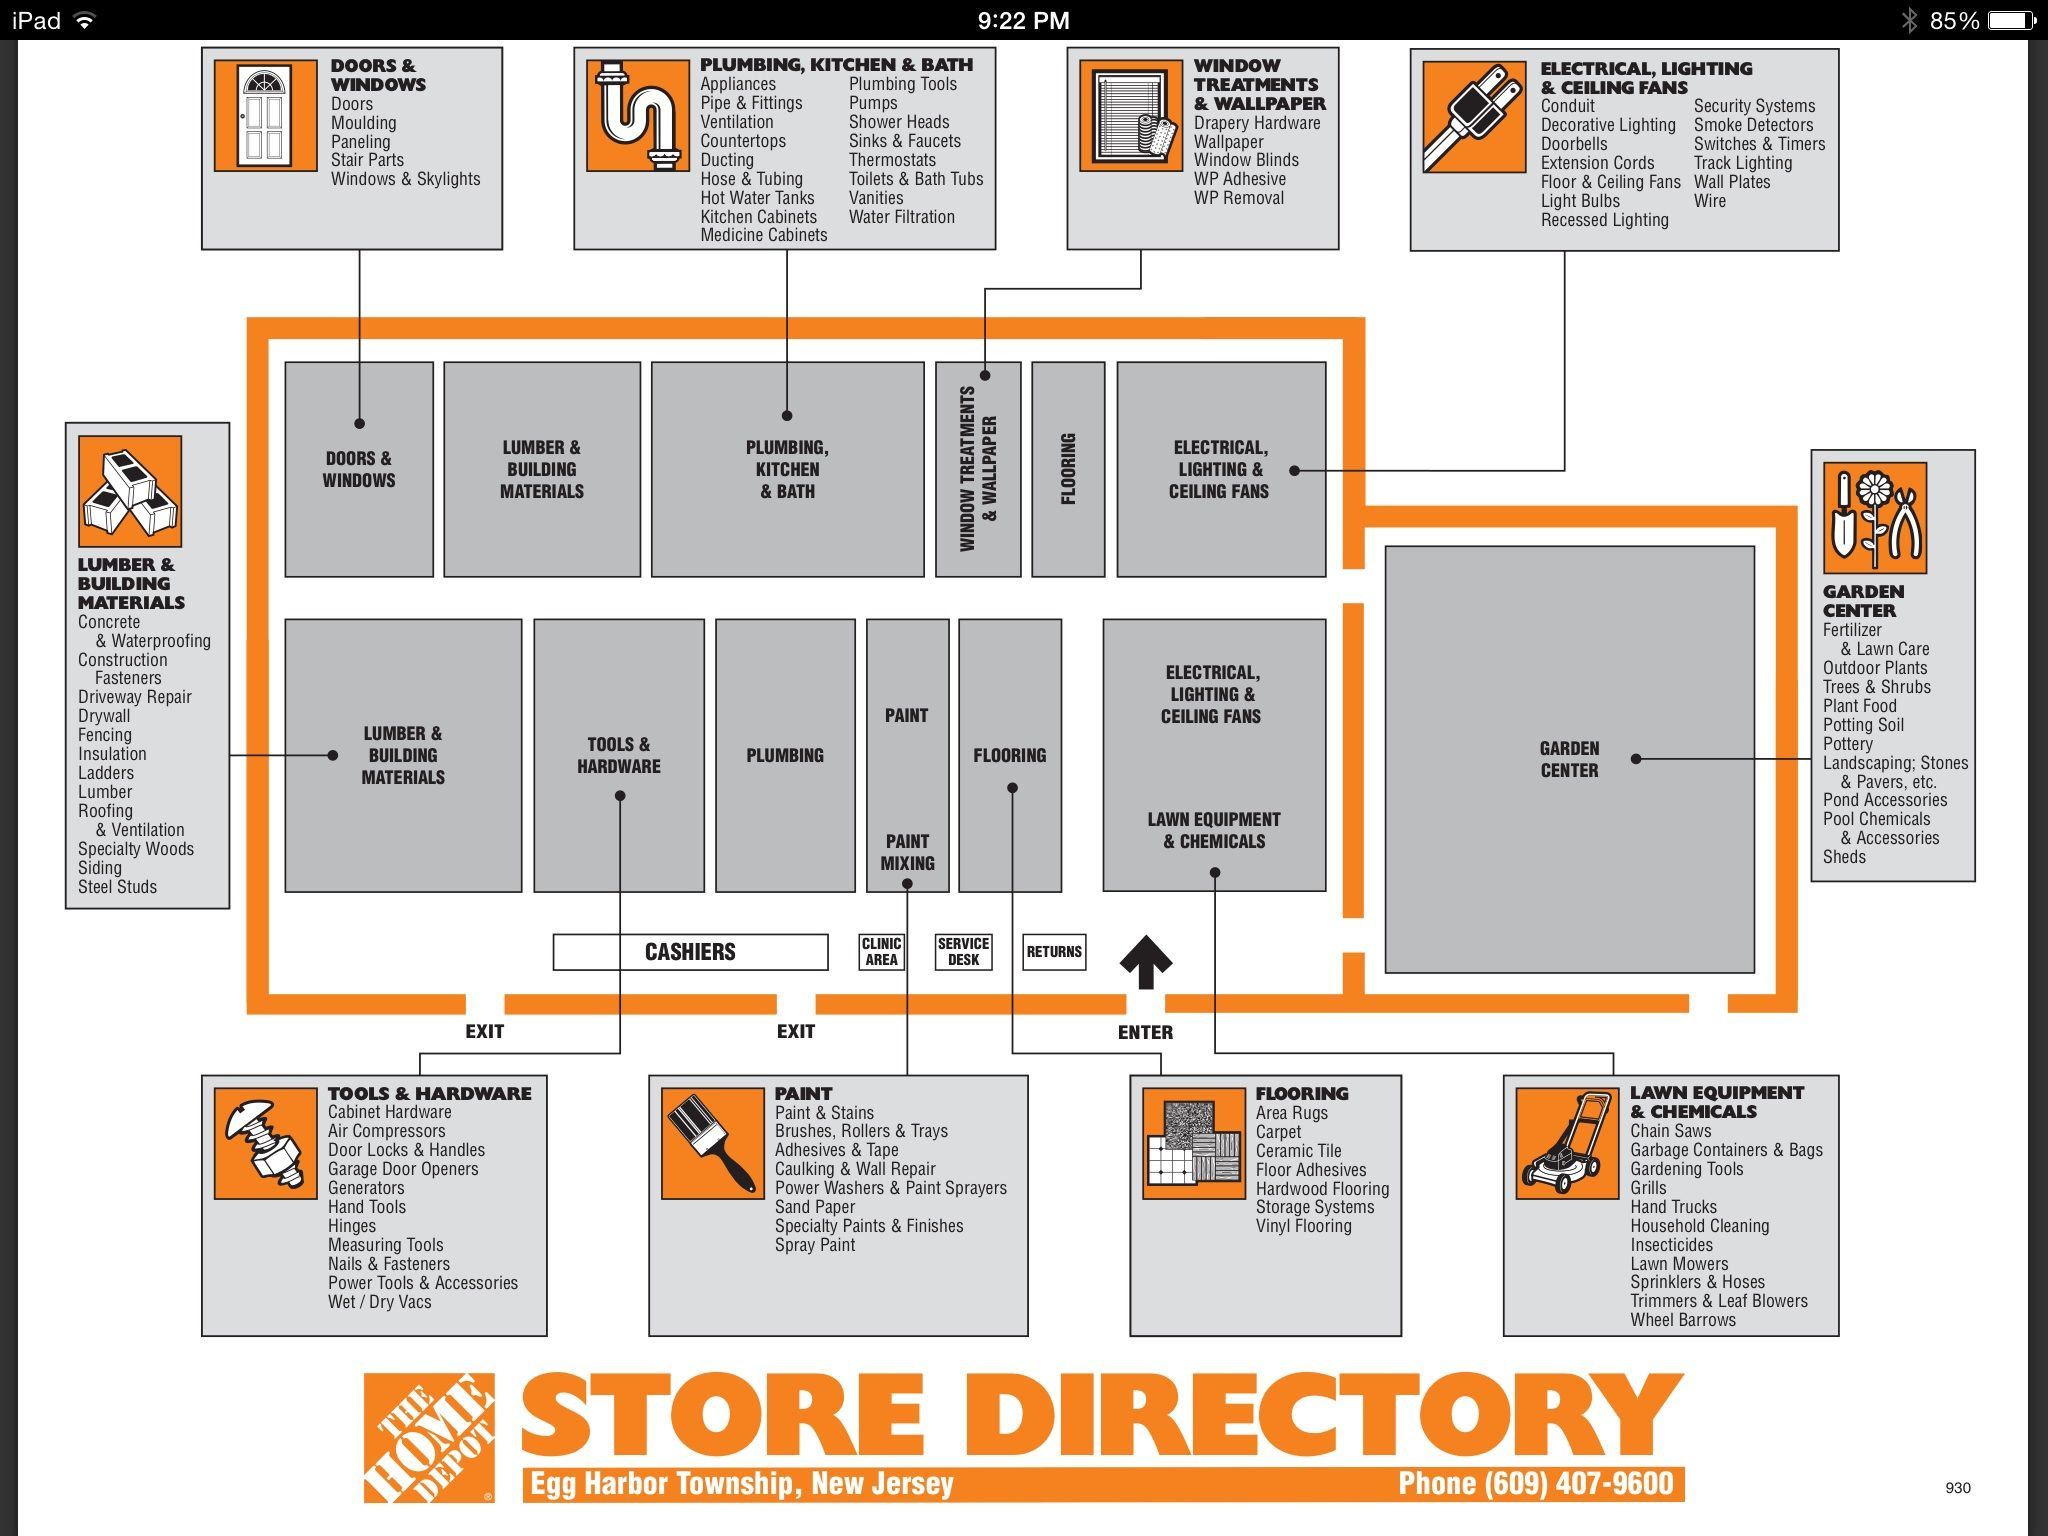 Home depot store directory eht nj house shopping list for Shop home depot